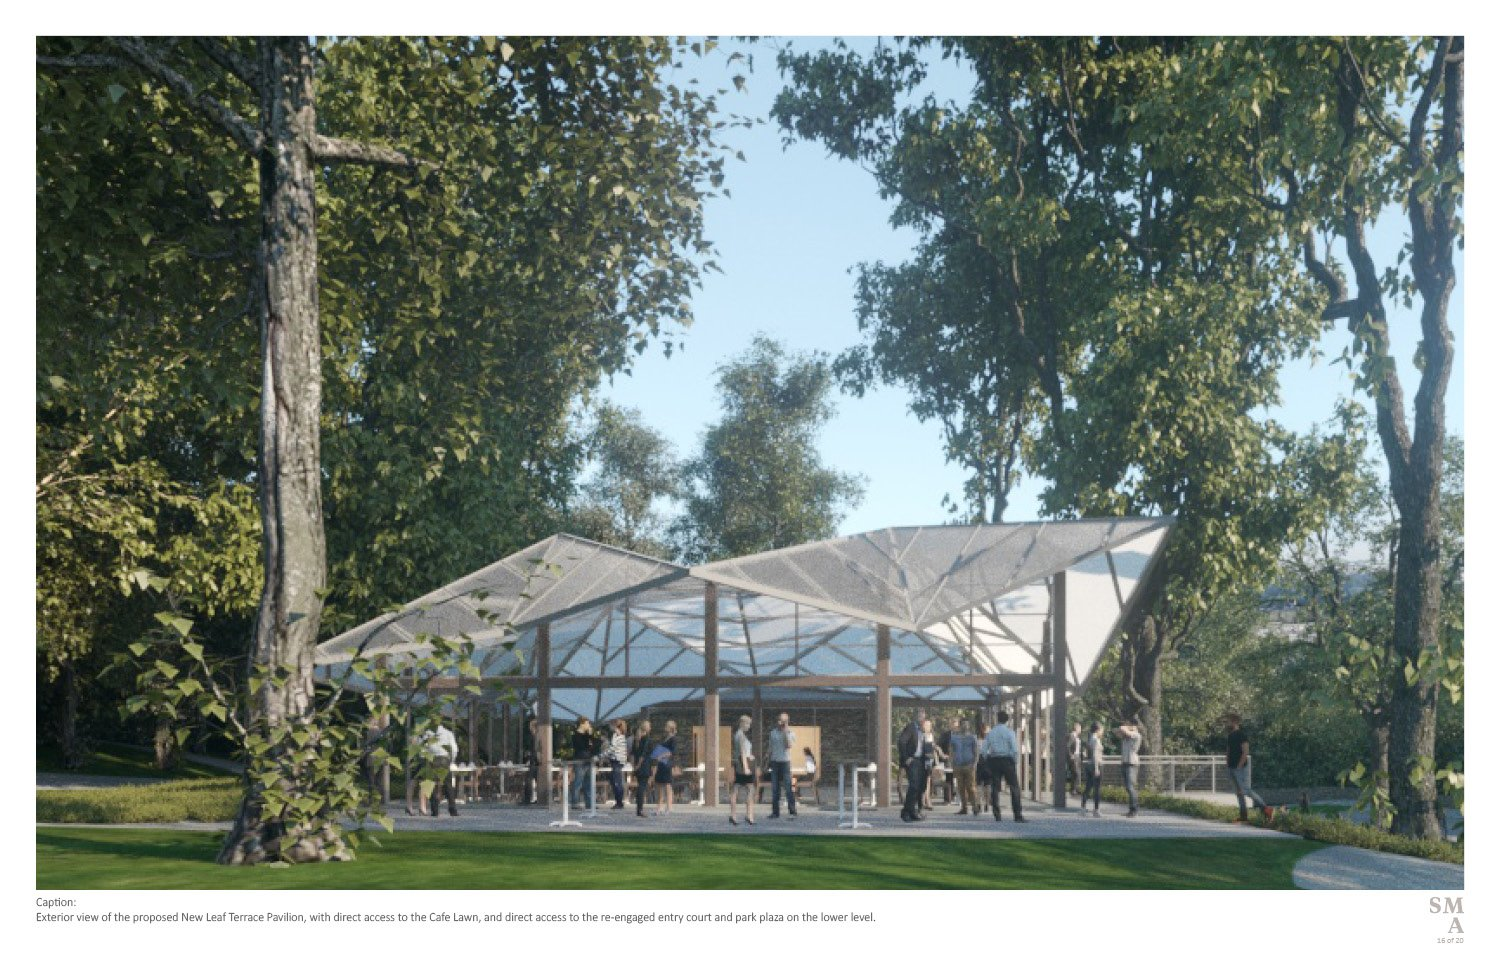 Exterior view of the proposed New Leaf Terrace Pavilion, with direct access to the Cafe Lawn, and direct access to the re-engaged entry court and park plaza on the lower level. SMA | Stephen Moser Architect - Design Team